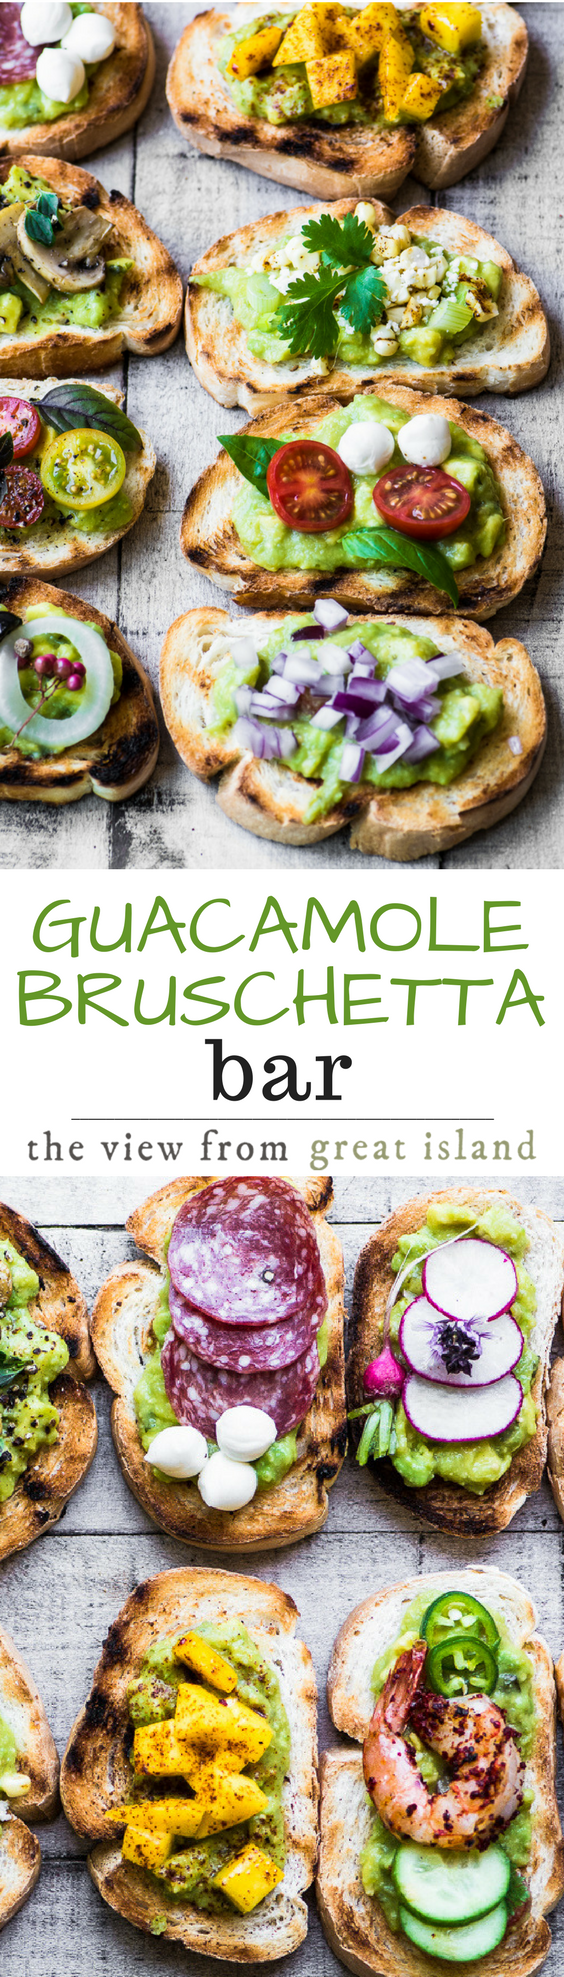 Guacamole Bruschetta Bar pin